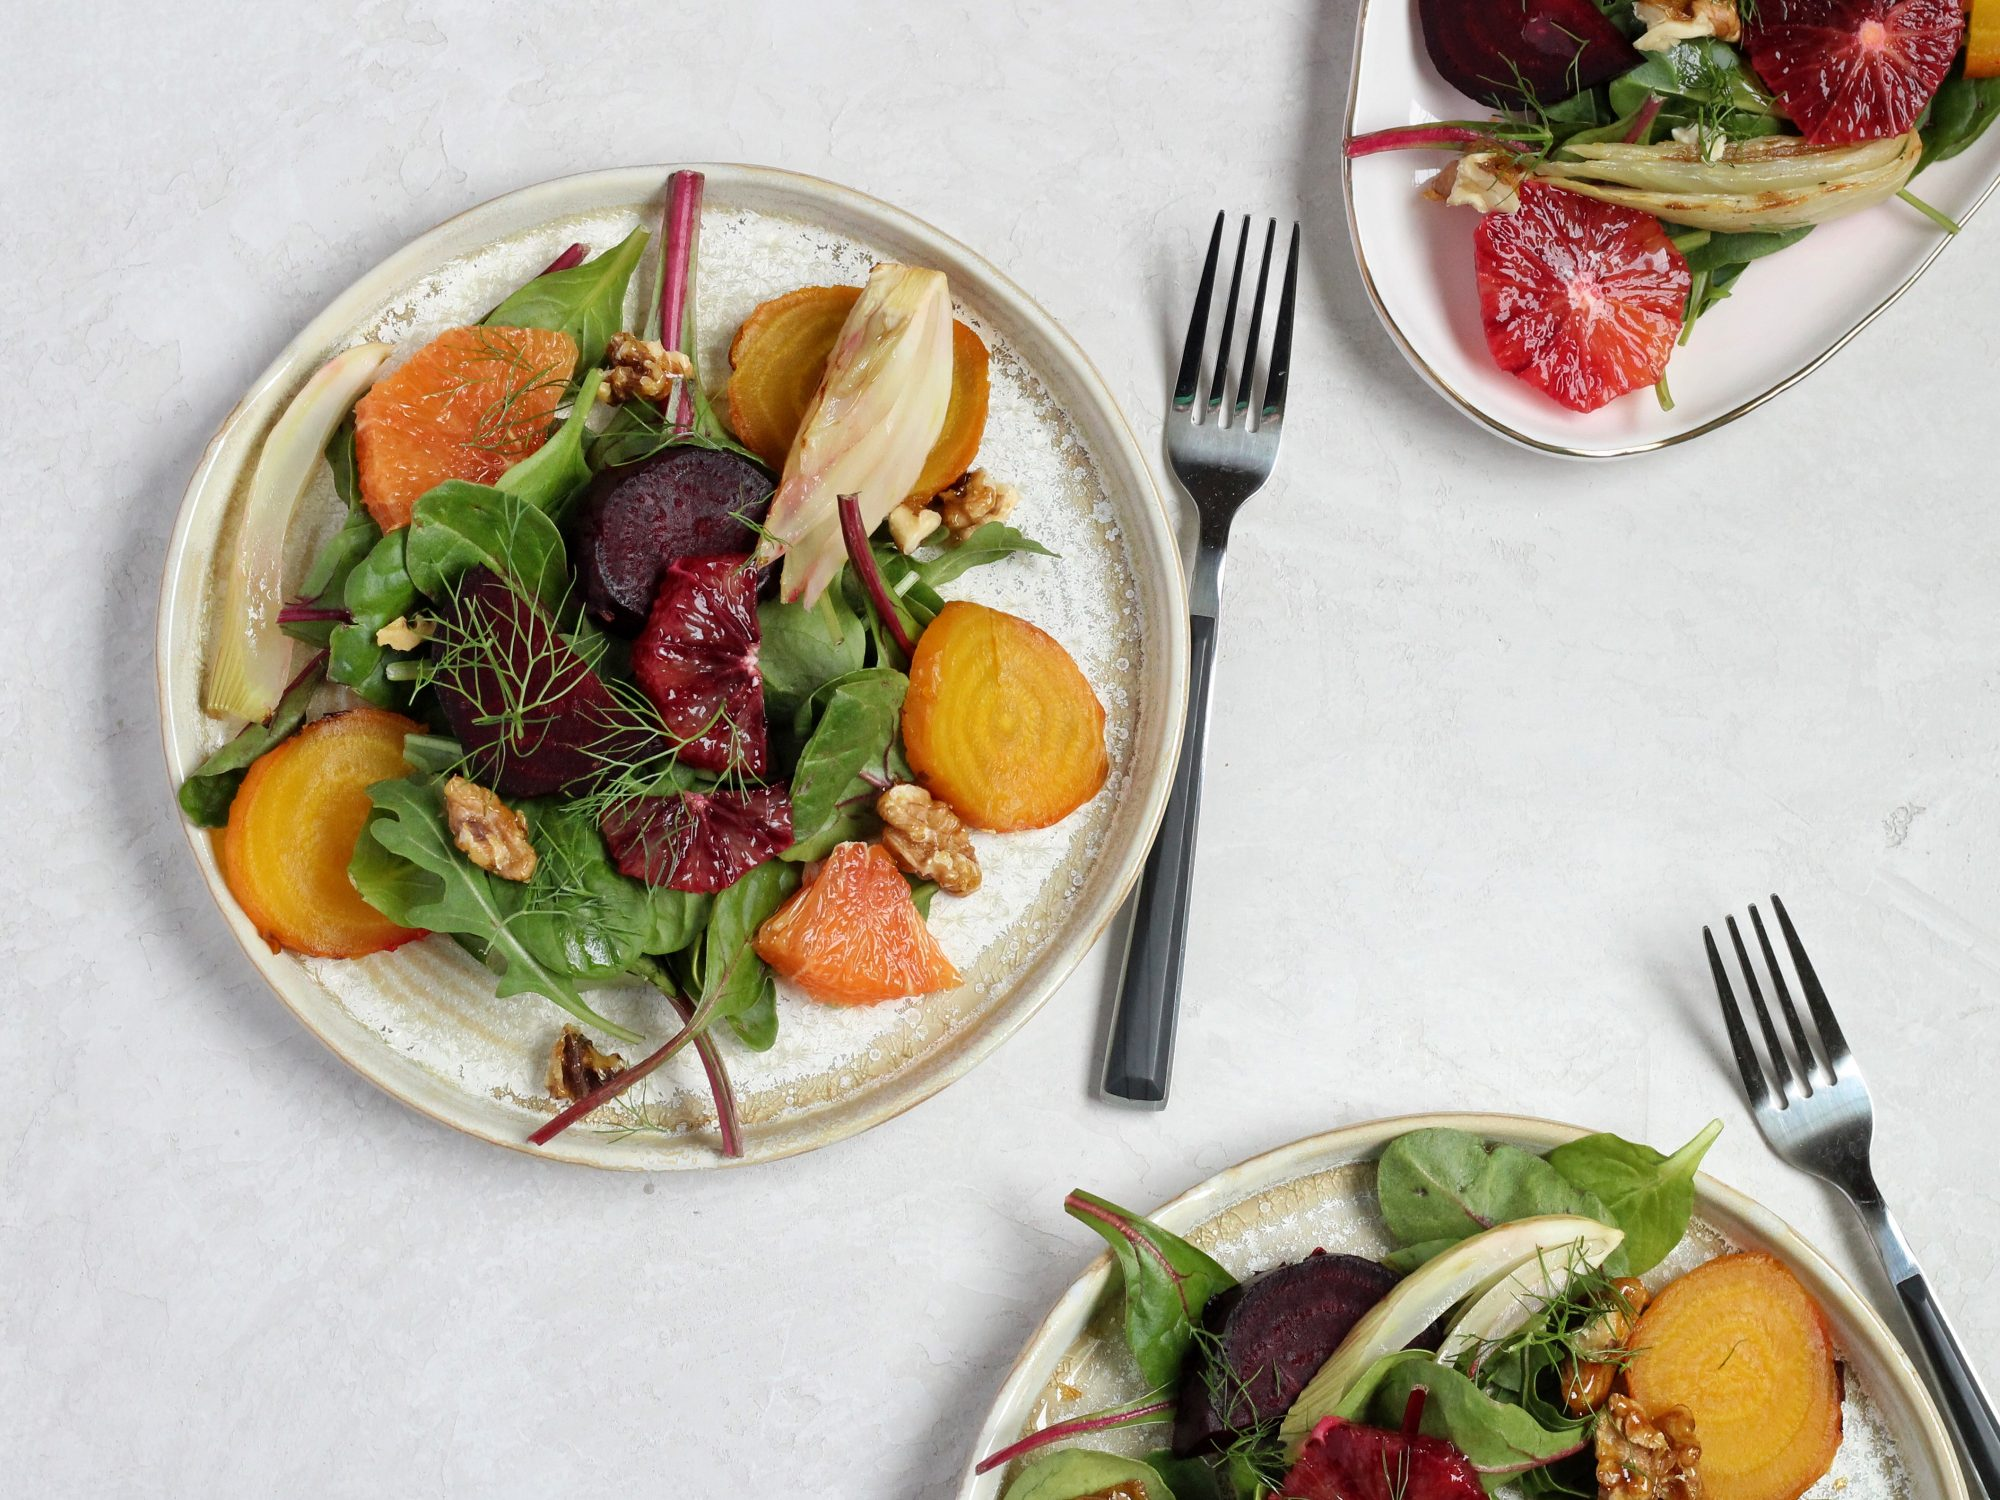 Beet Salad with Roasted Fennel, Blood Orange and Gorgonzola Vinaigrette